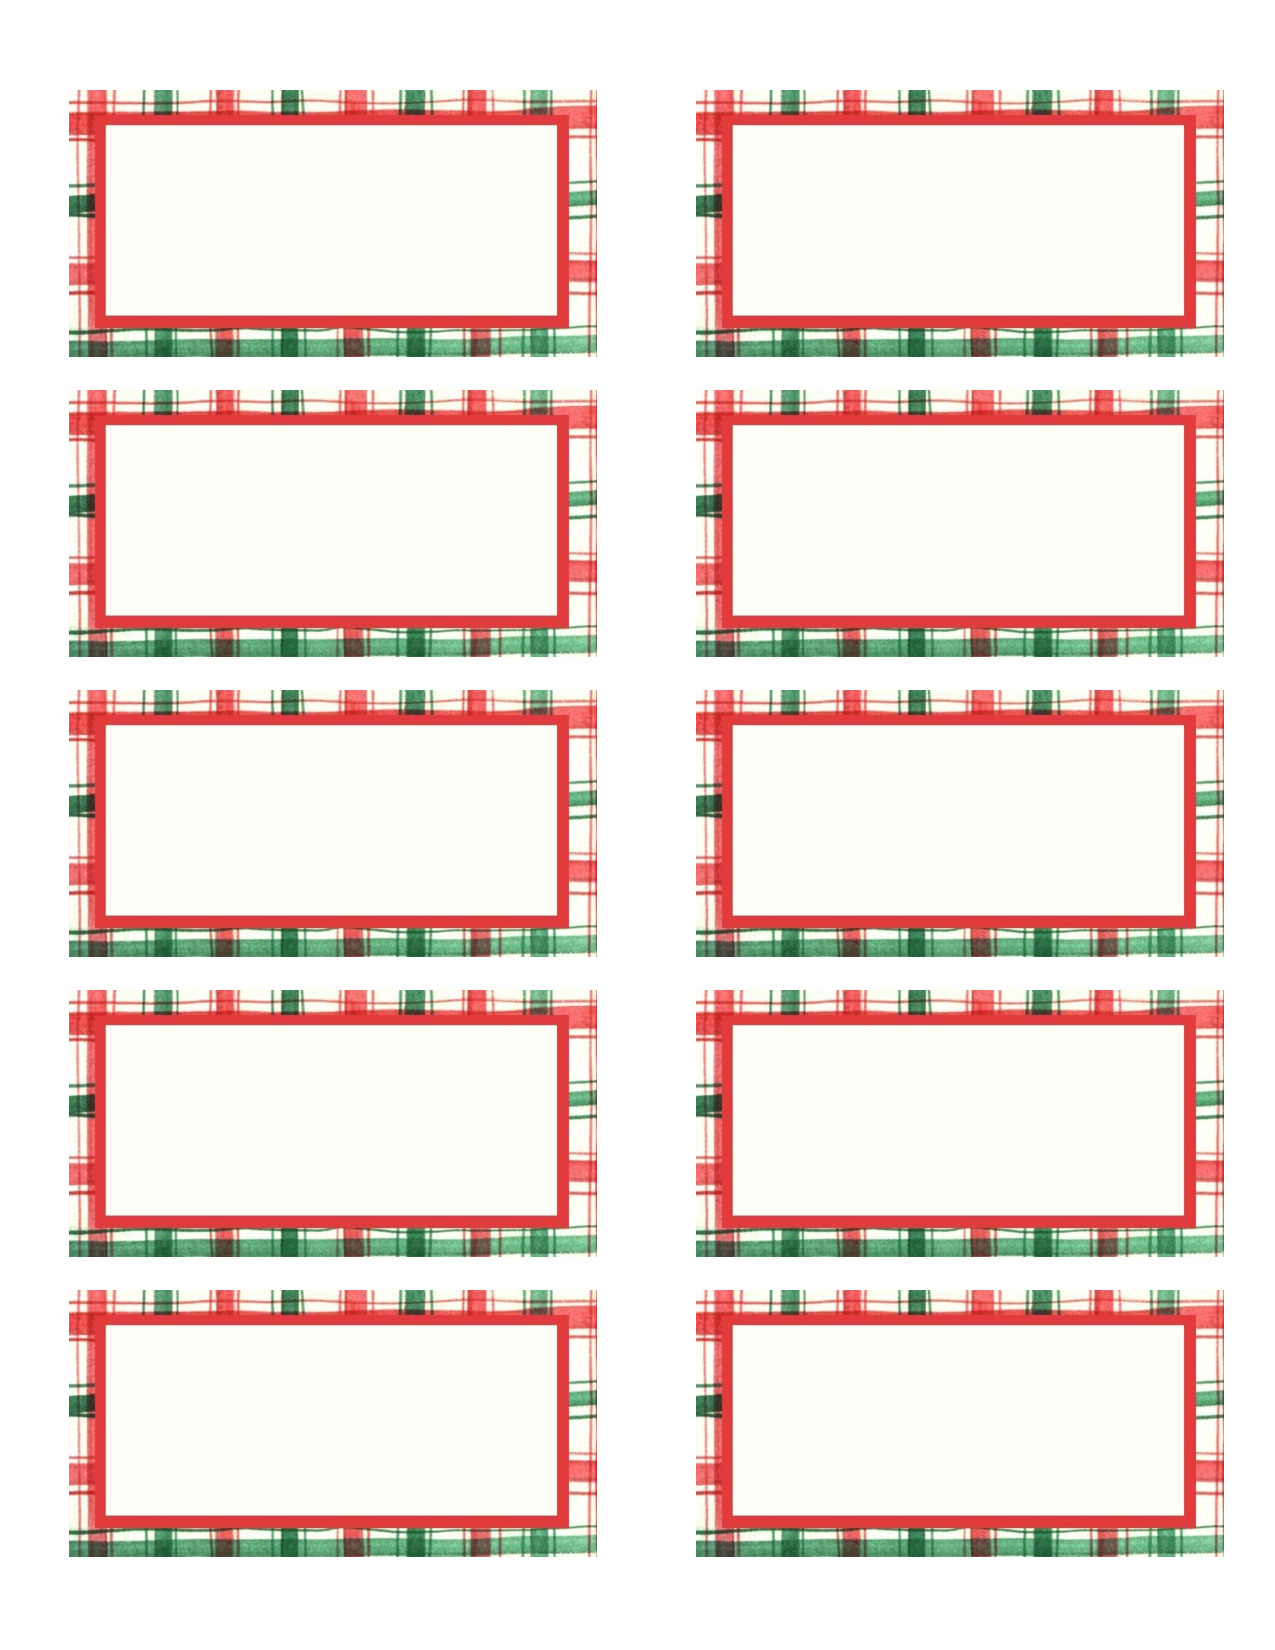 Free+Avery+Christmas+Tag+Label+Template | The Teacher In Me - Free Printable Labels Avery 5160